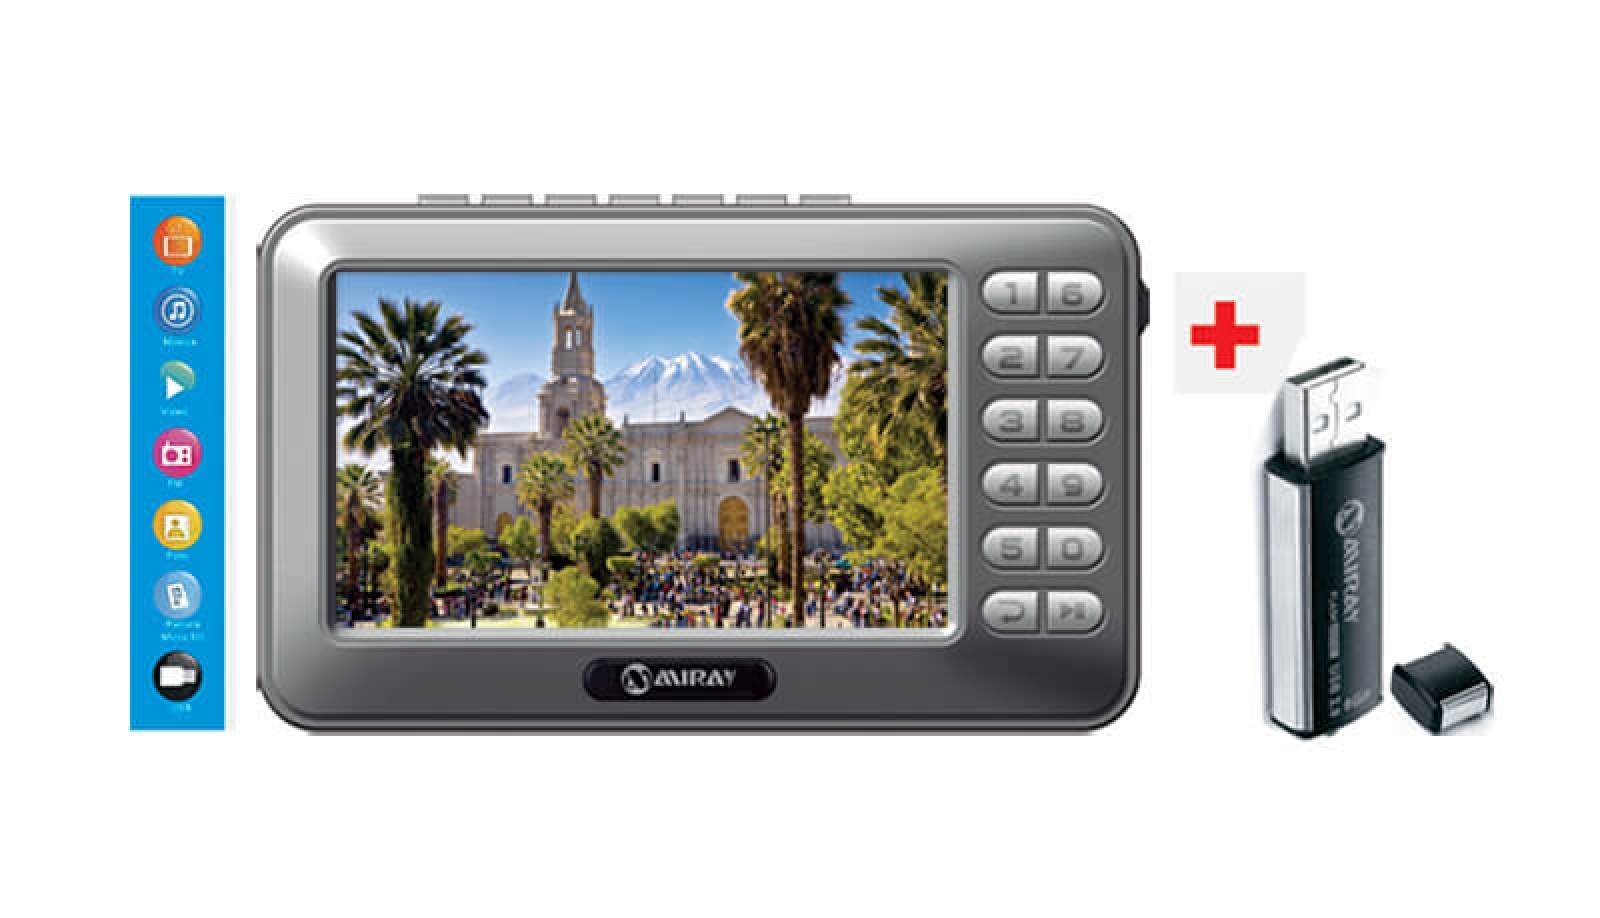 Miray Tv Porttil  Usb 8gb  Fiestas Patrias  Catlogo